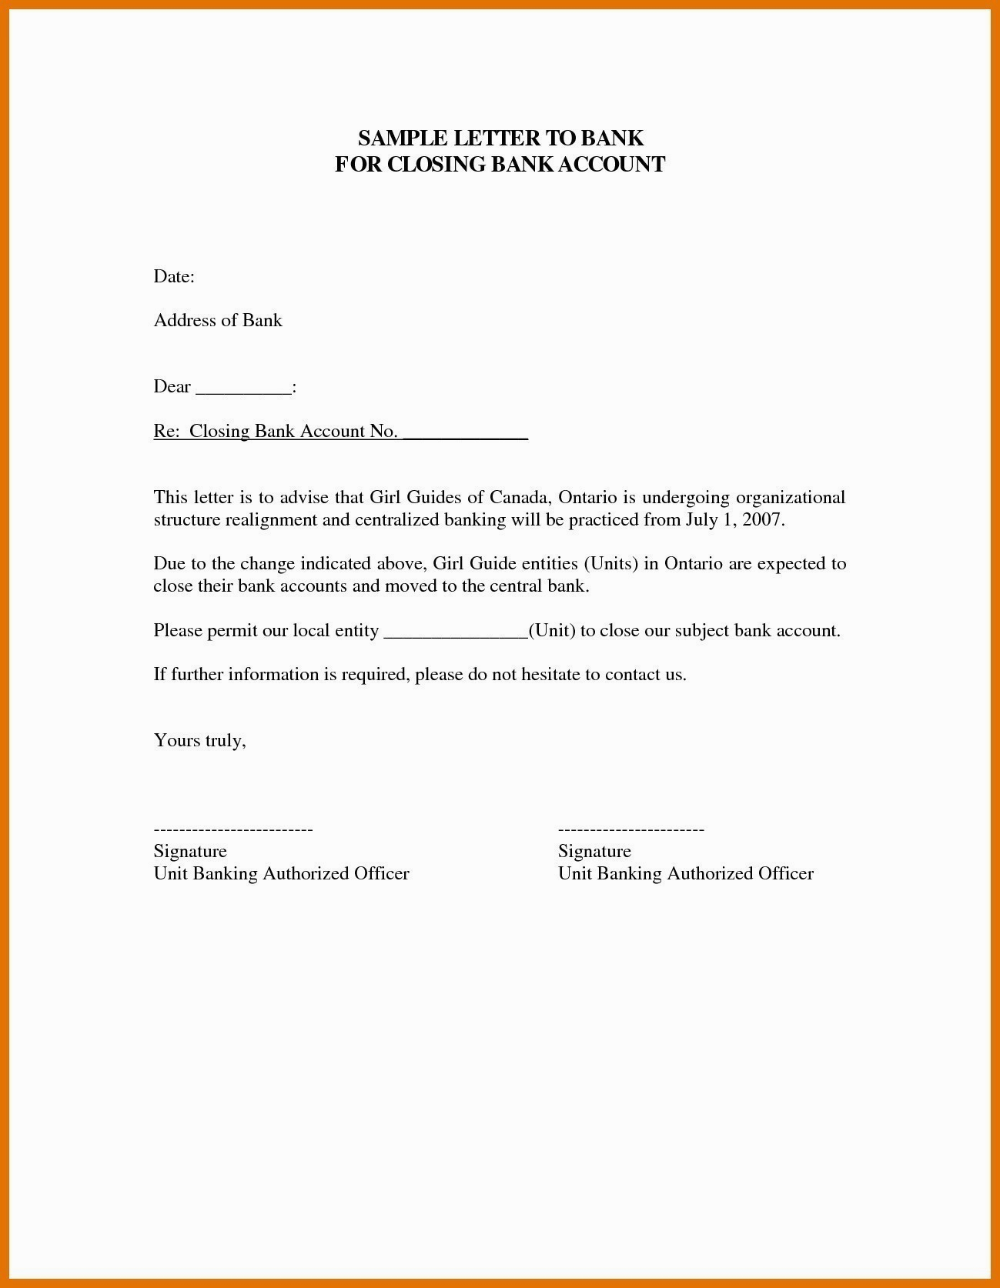 Whether you have just inherited money, are starting up a new business, have received a job promotion, have recently had a child or any other major life change, you may want to consider opening one or multiple bank accounts. Closing Account Letter Is Closing Account Letter Any Good Inside Account Closure Letter Template 10 Professi Letter Templates Lettering Letter Format Sample